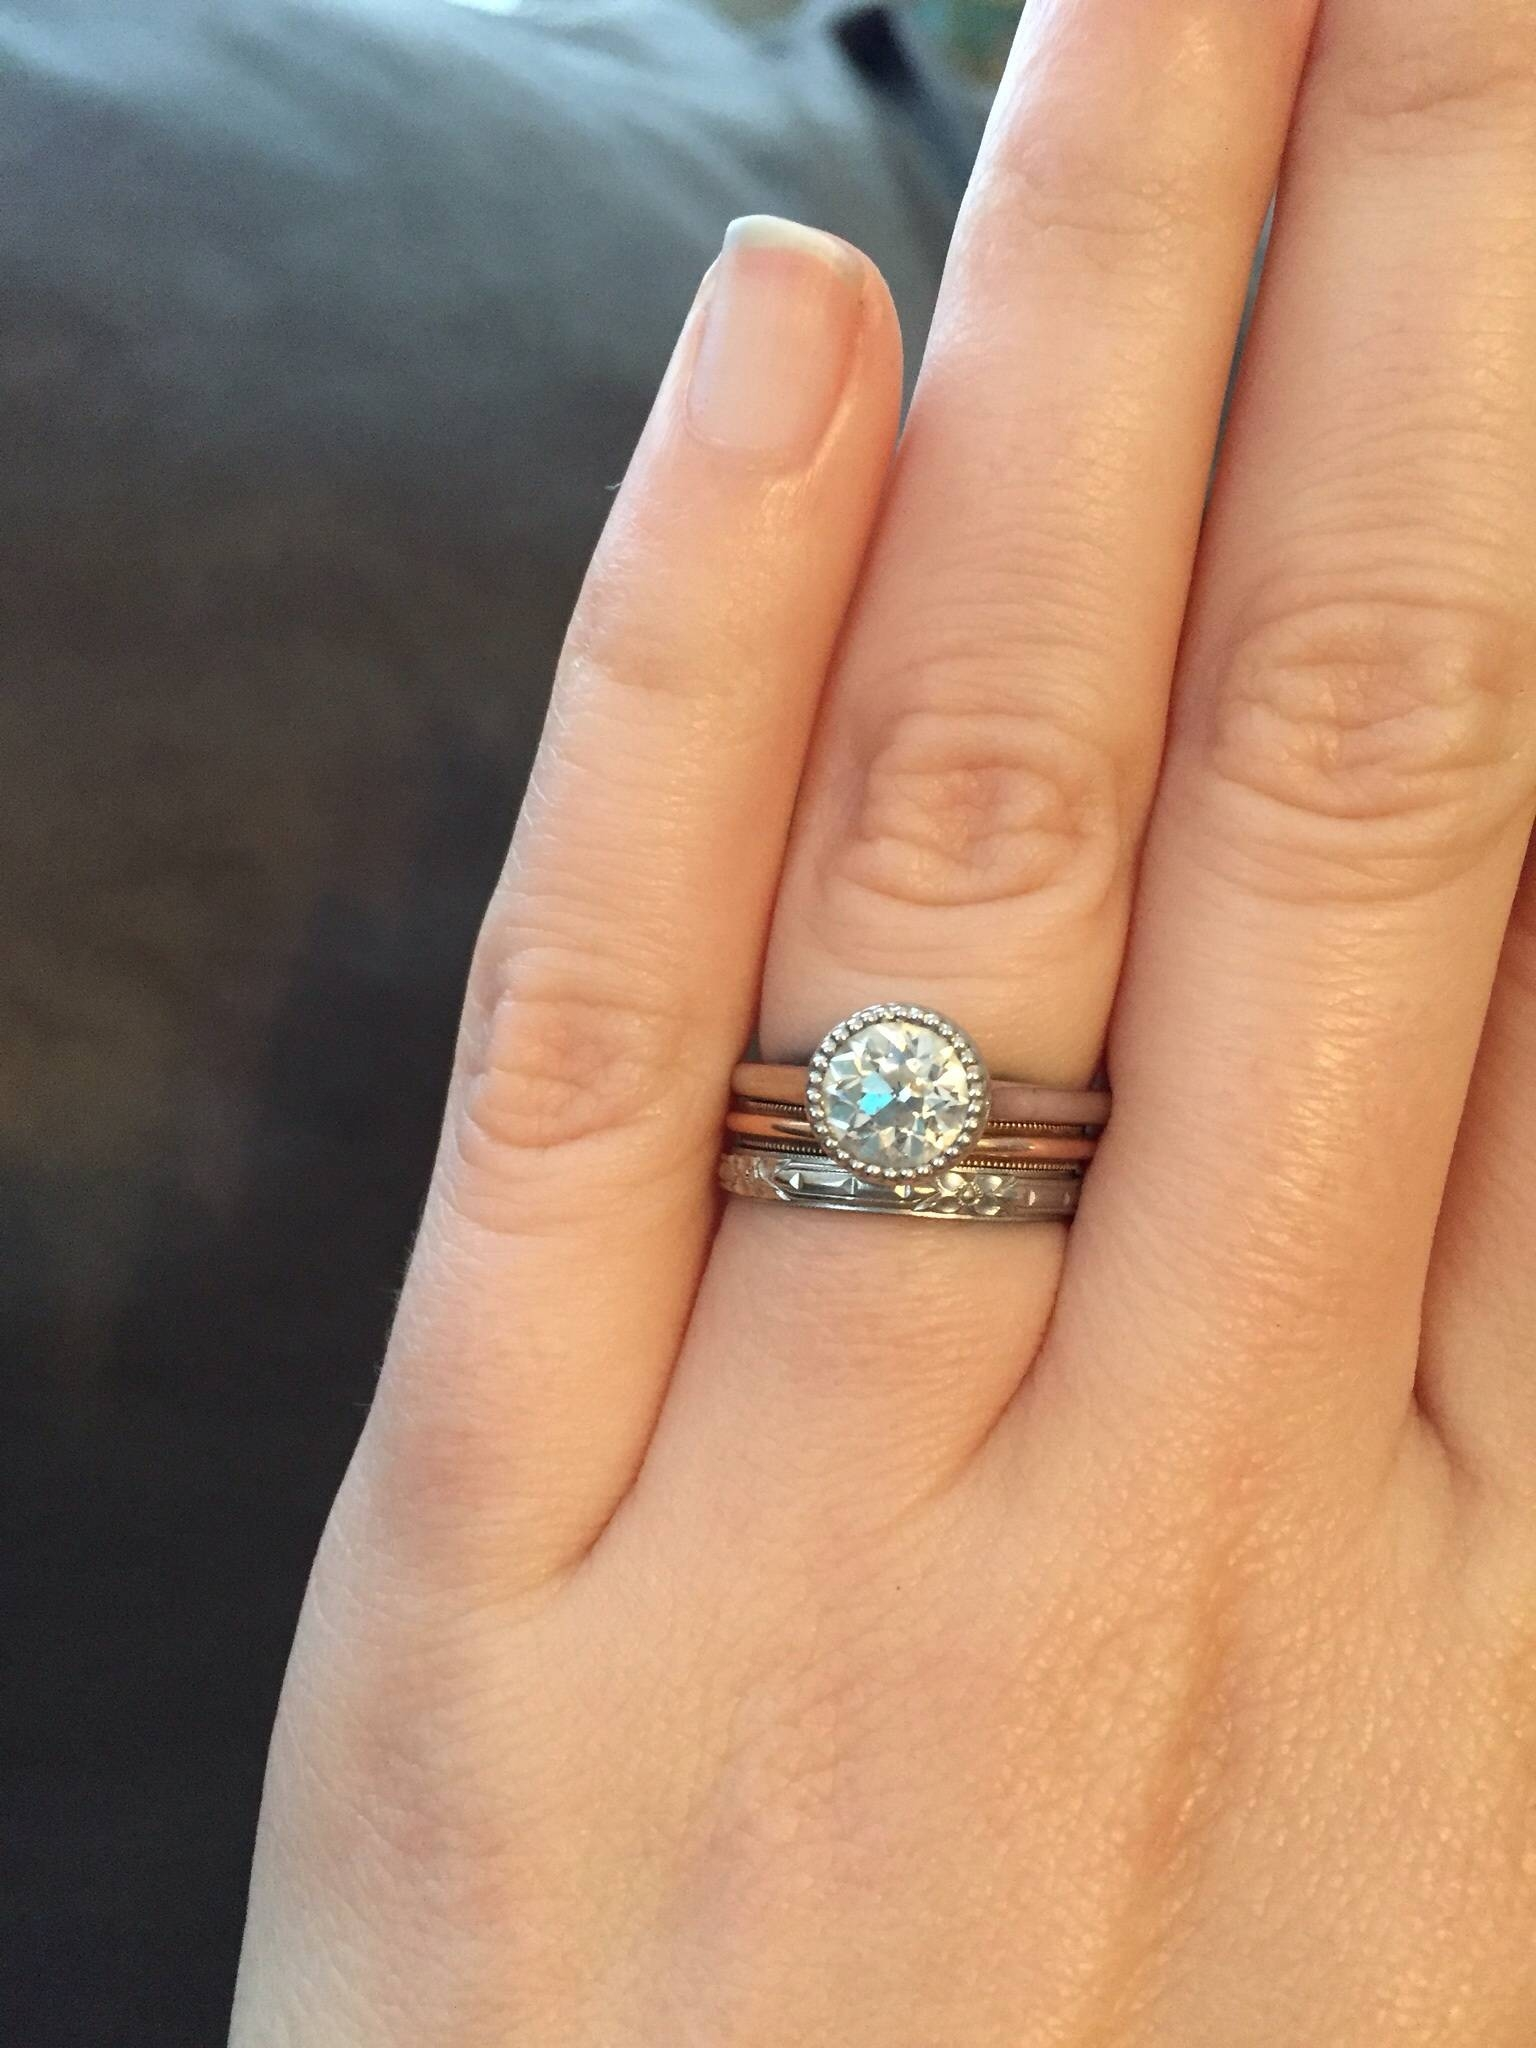 Looking For Ideas For Wedding Band With Bezel Set Engagement Ring For Most Up To Date Bezel Set Engagement Rings With Wedding Bands (Gallery 1 of 15)